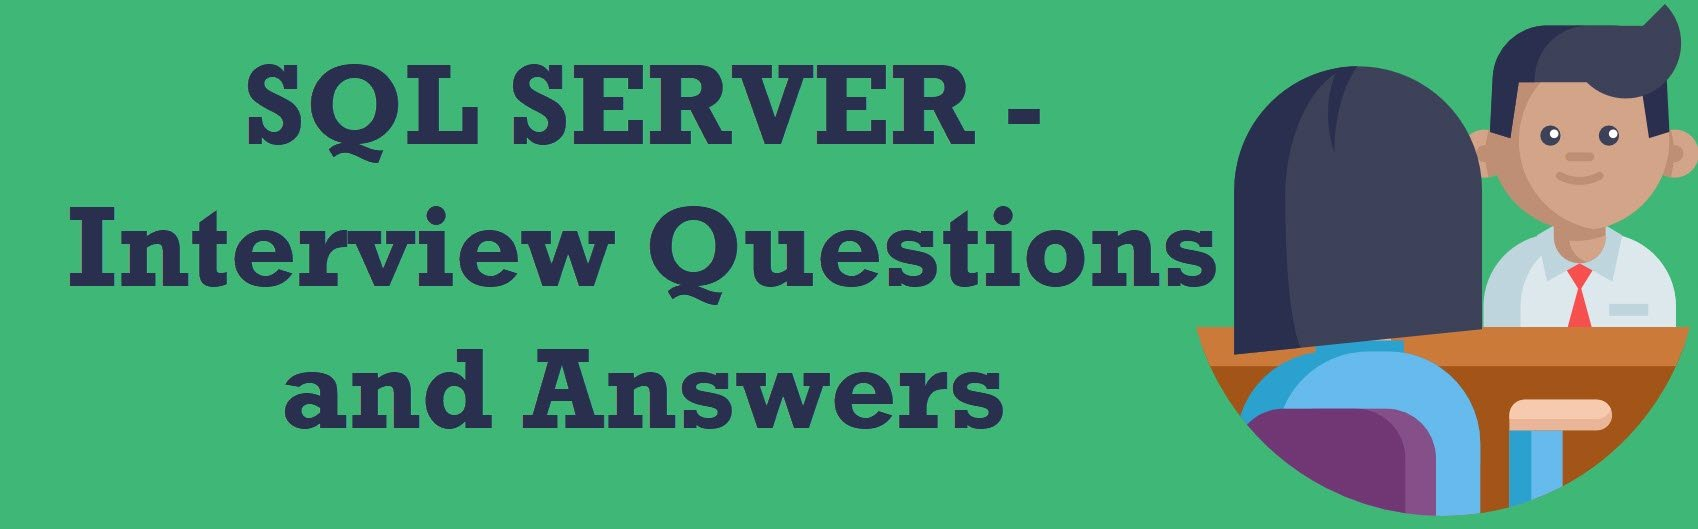 SQL SERVER - Interview Questions and Answers - Part 2 interviewquestionandanswers